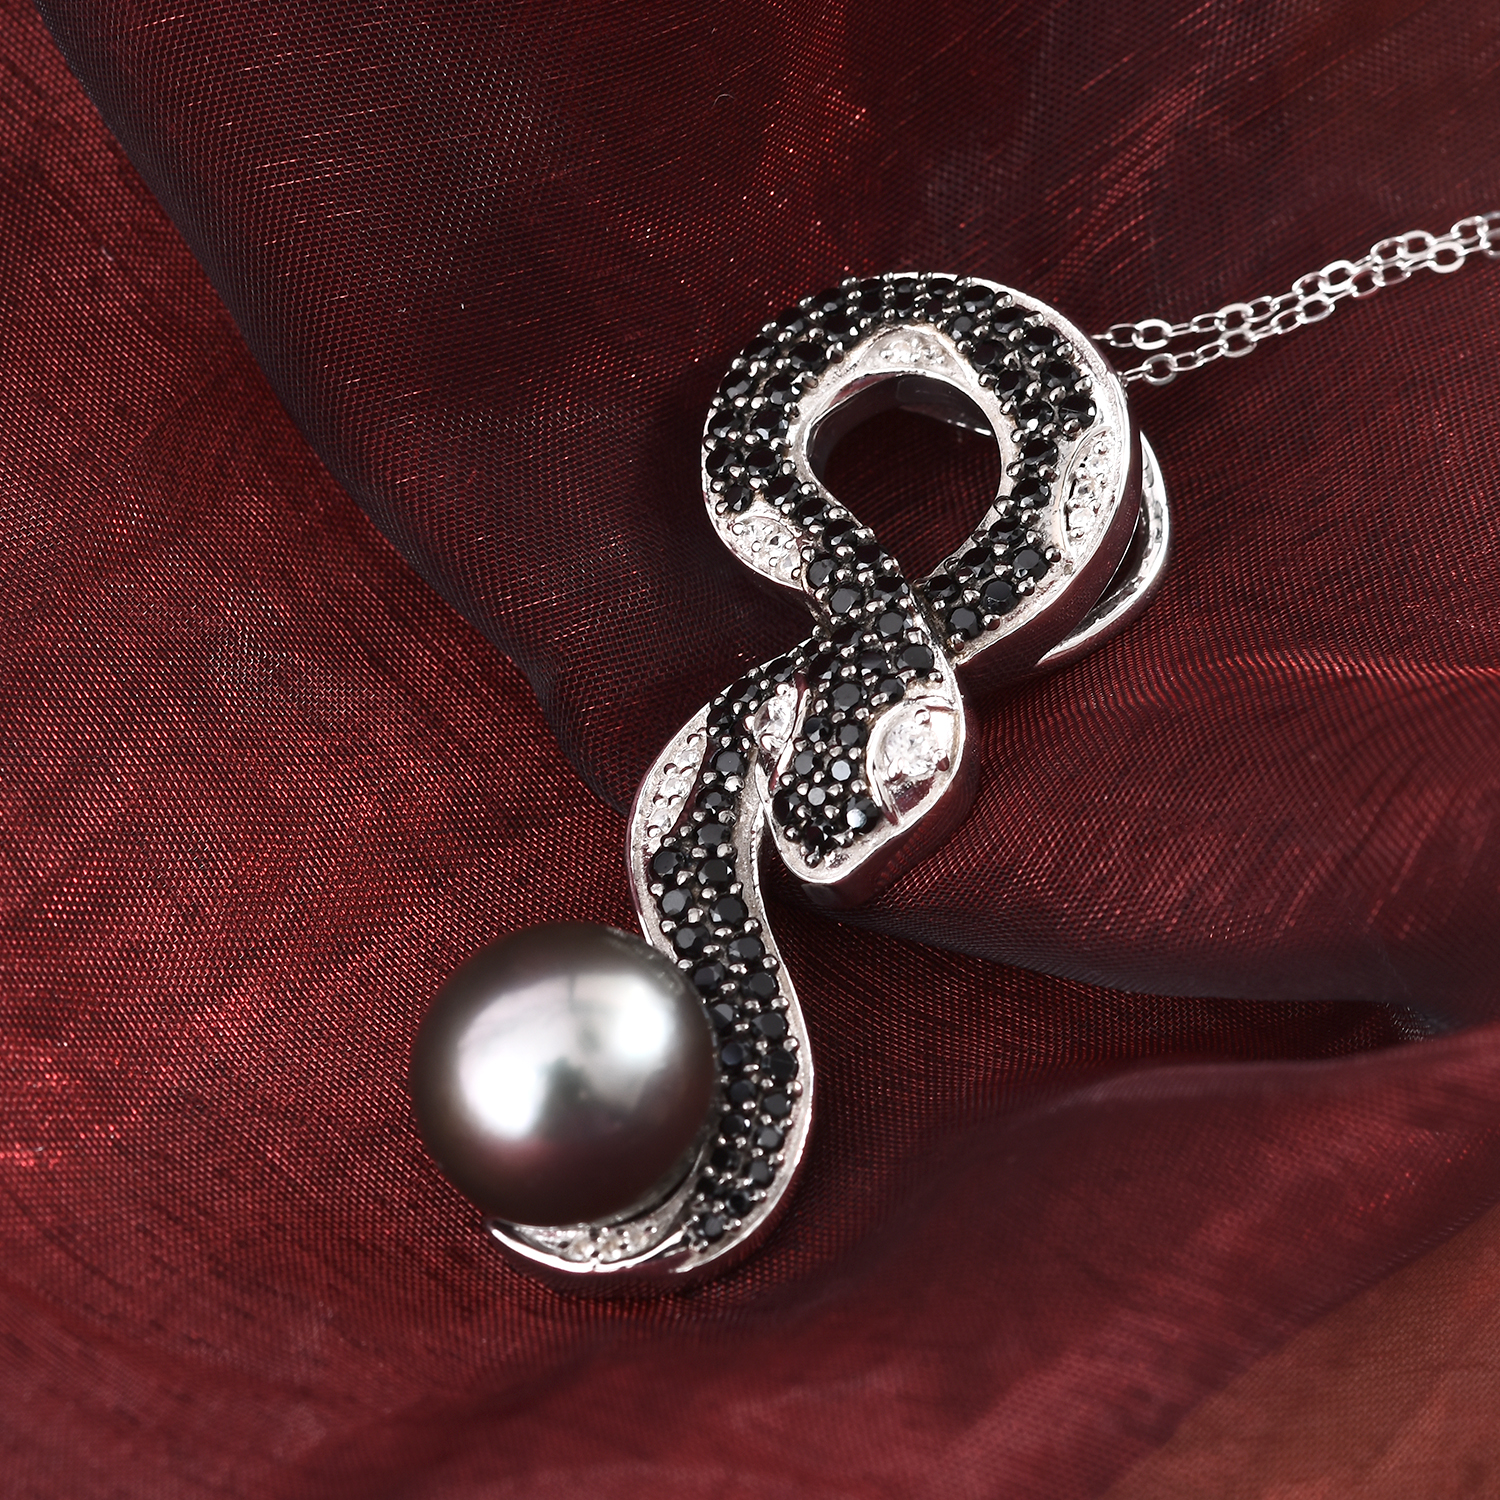 Tahitian pearl pendant by Giuseppe Perez.